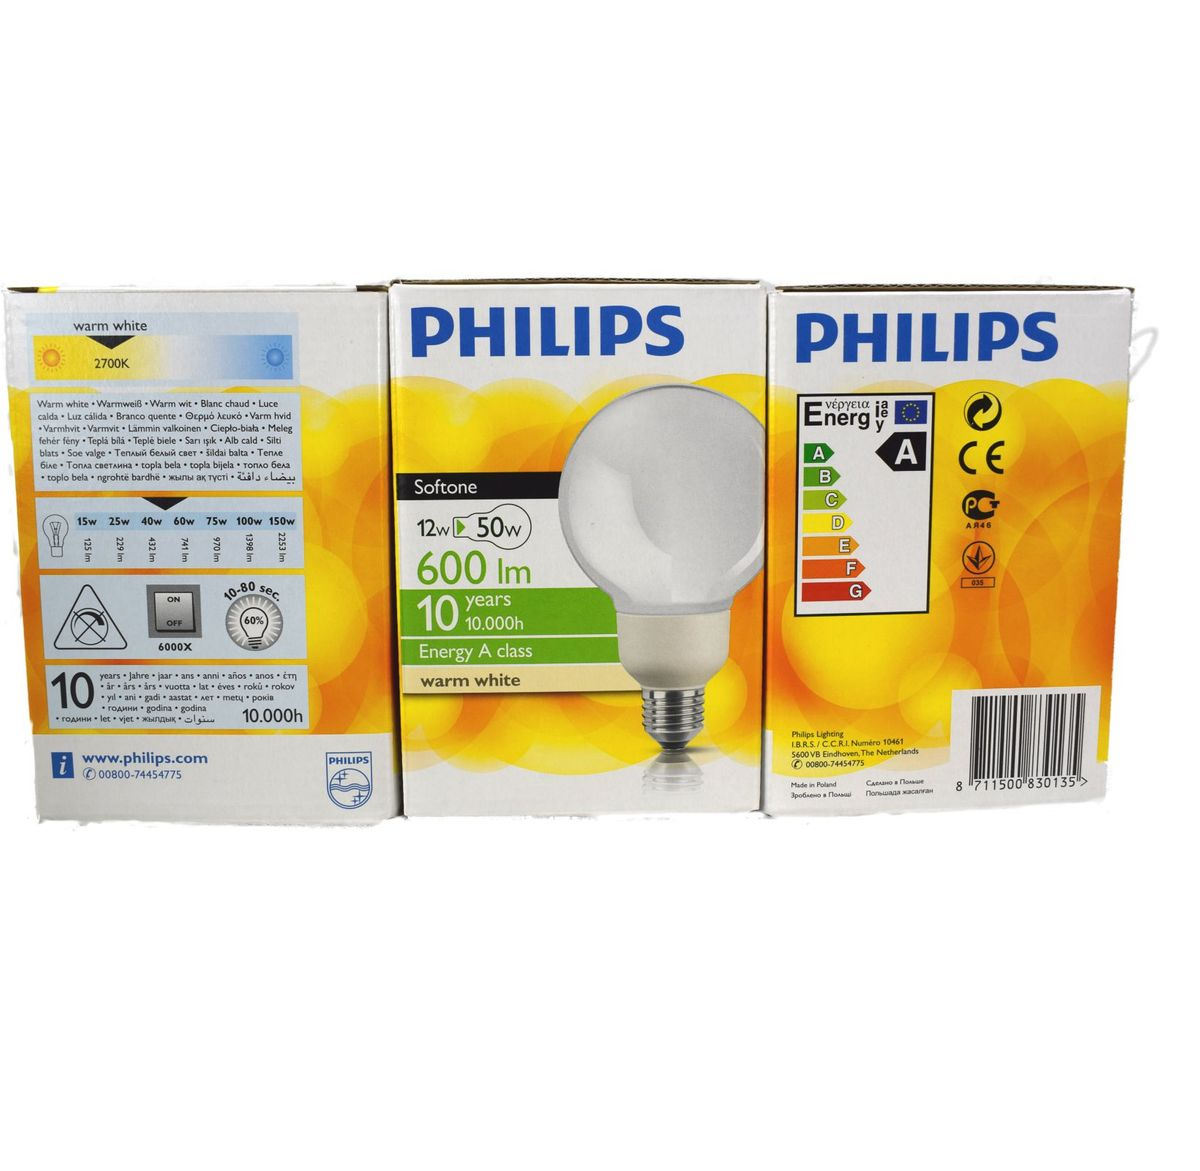 philips softone energie saver lampe birne 12 watt warmwei. Black Bedroom Furniture Sets. Home Design Ideas